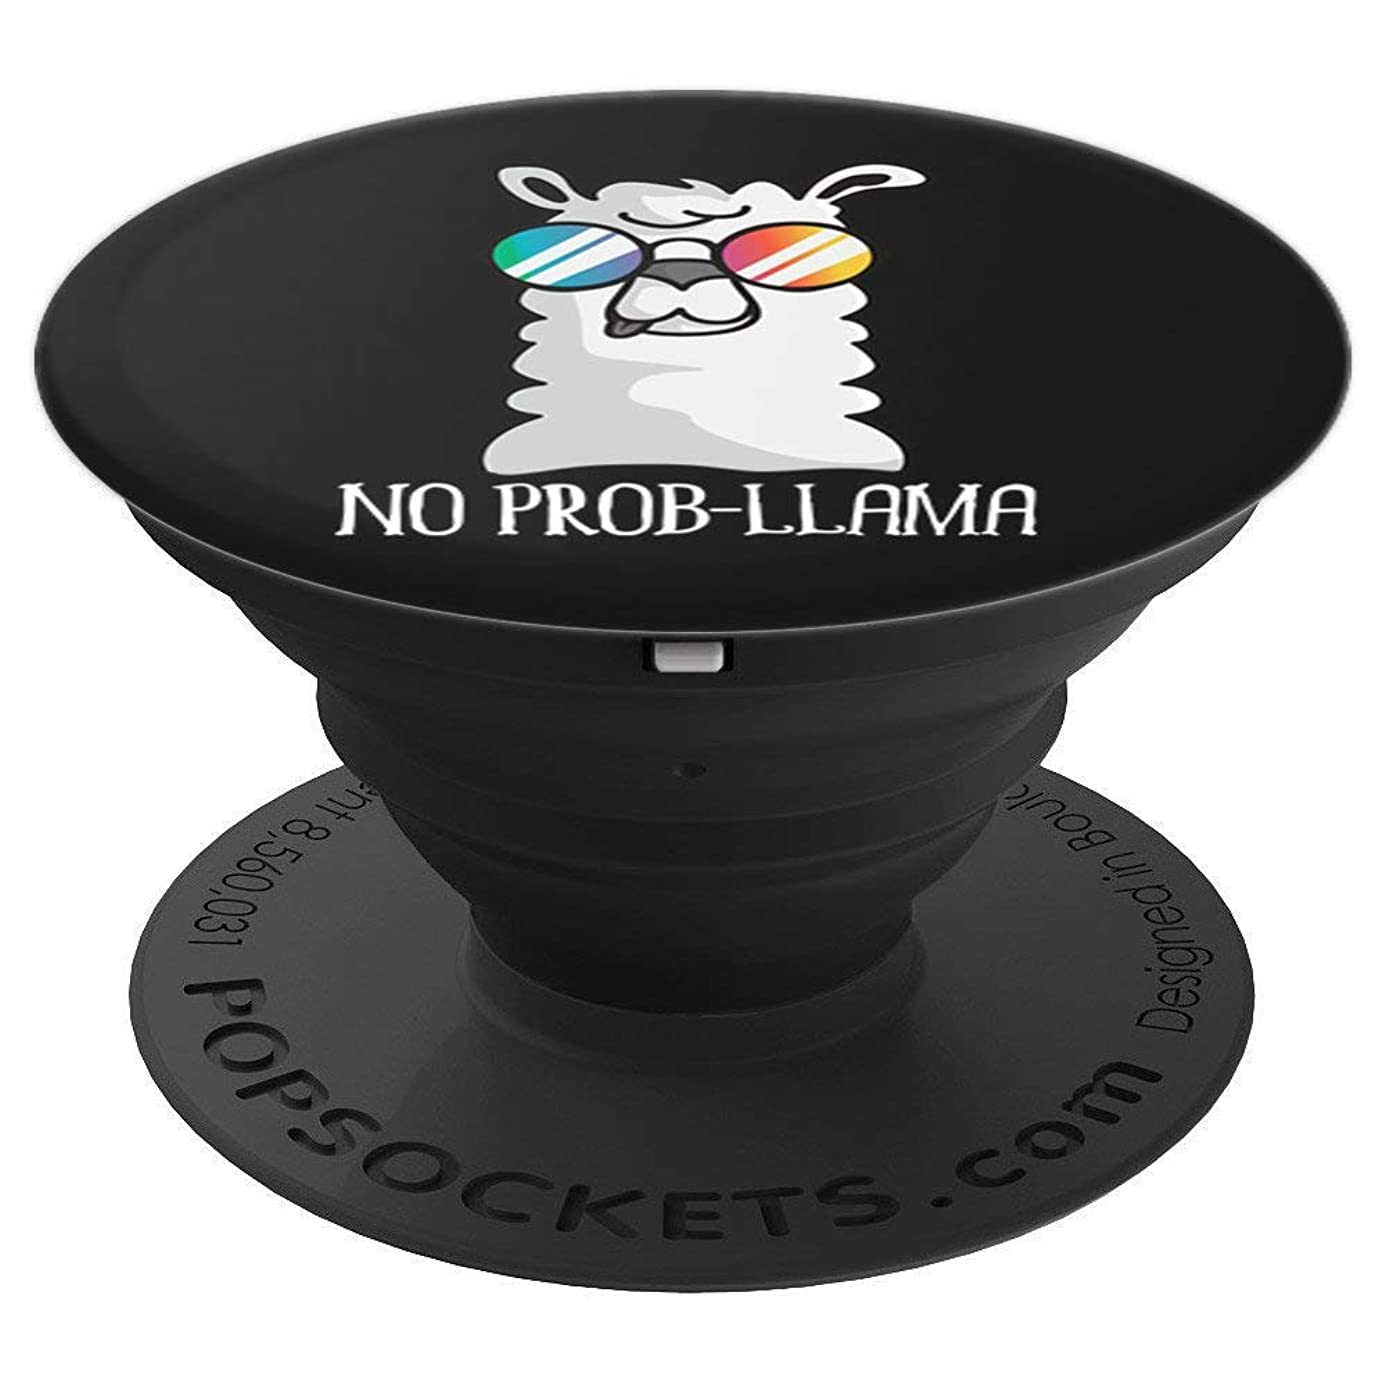 No Prob-Llama No Problem Cute Funny Cool Llama Alpaca Gift - PopSockets Grip and Stand for Phones and Tablets oxb7402640